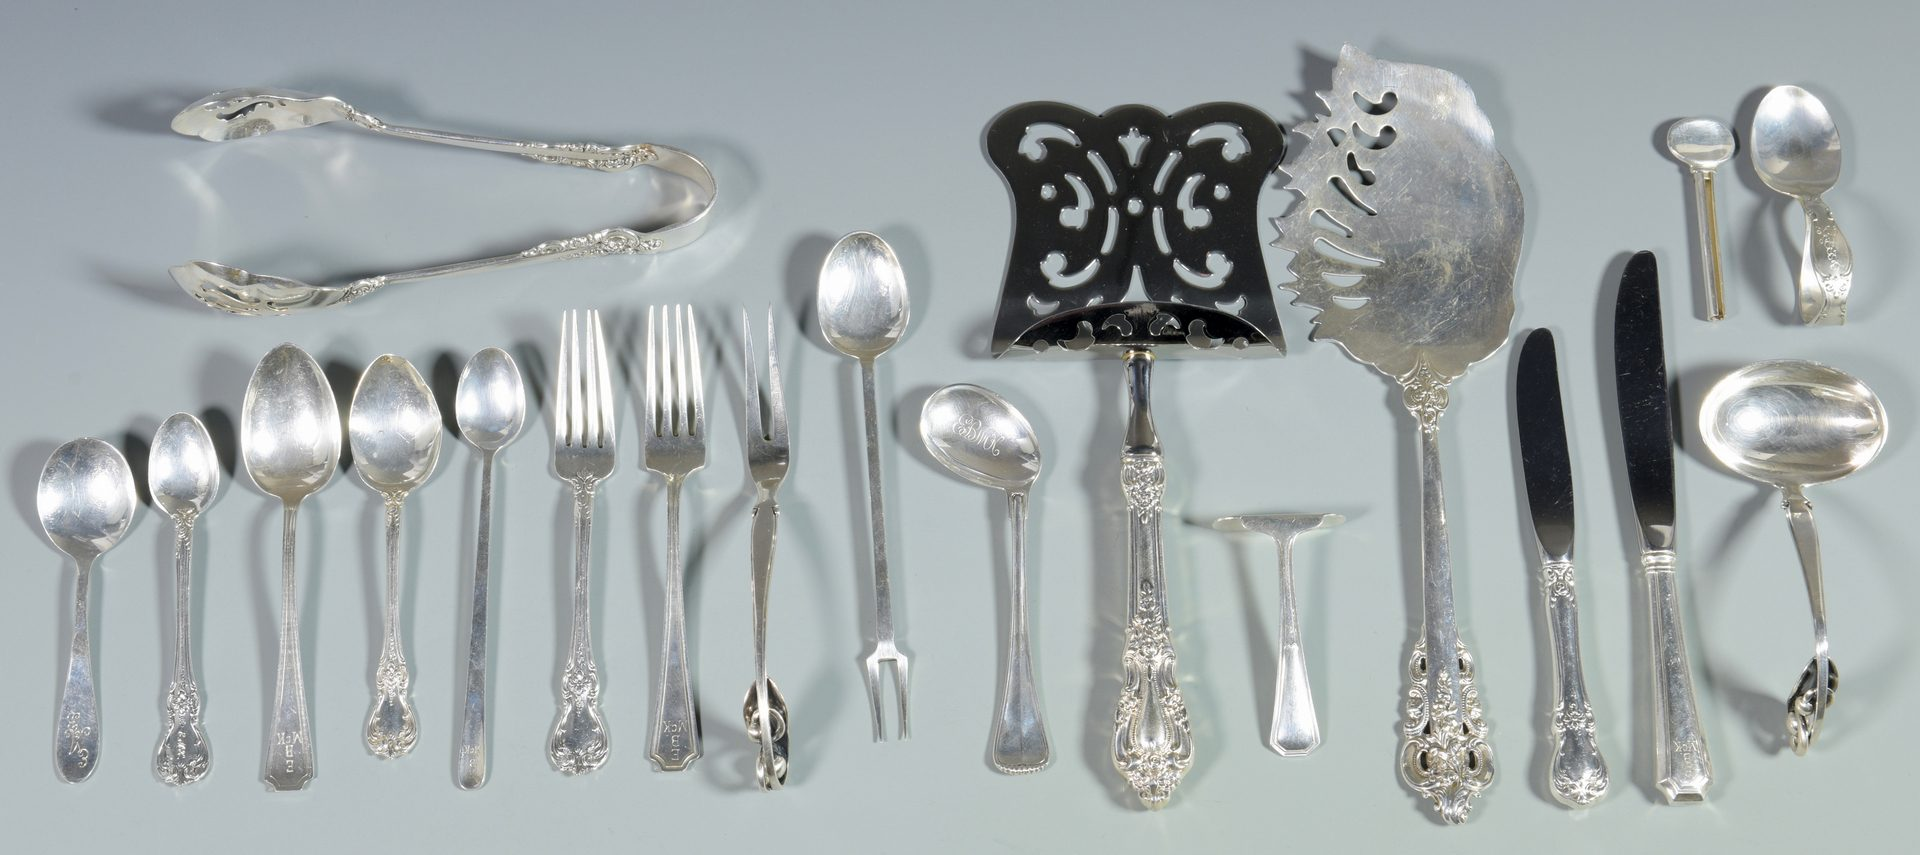 Lot 993: 19 pcs. flatware inc. serving pieces